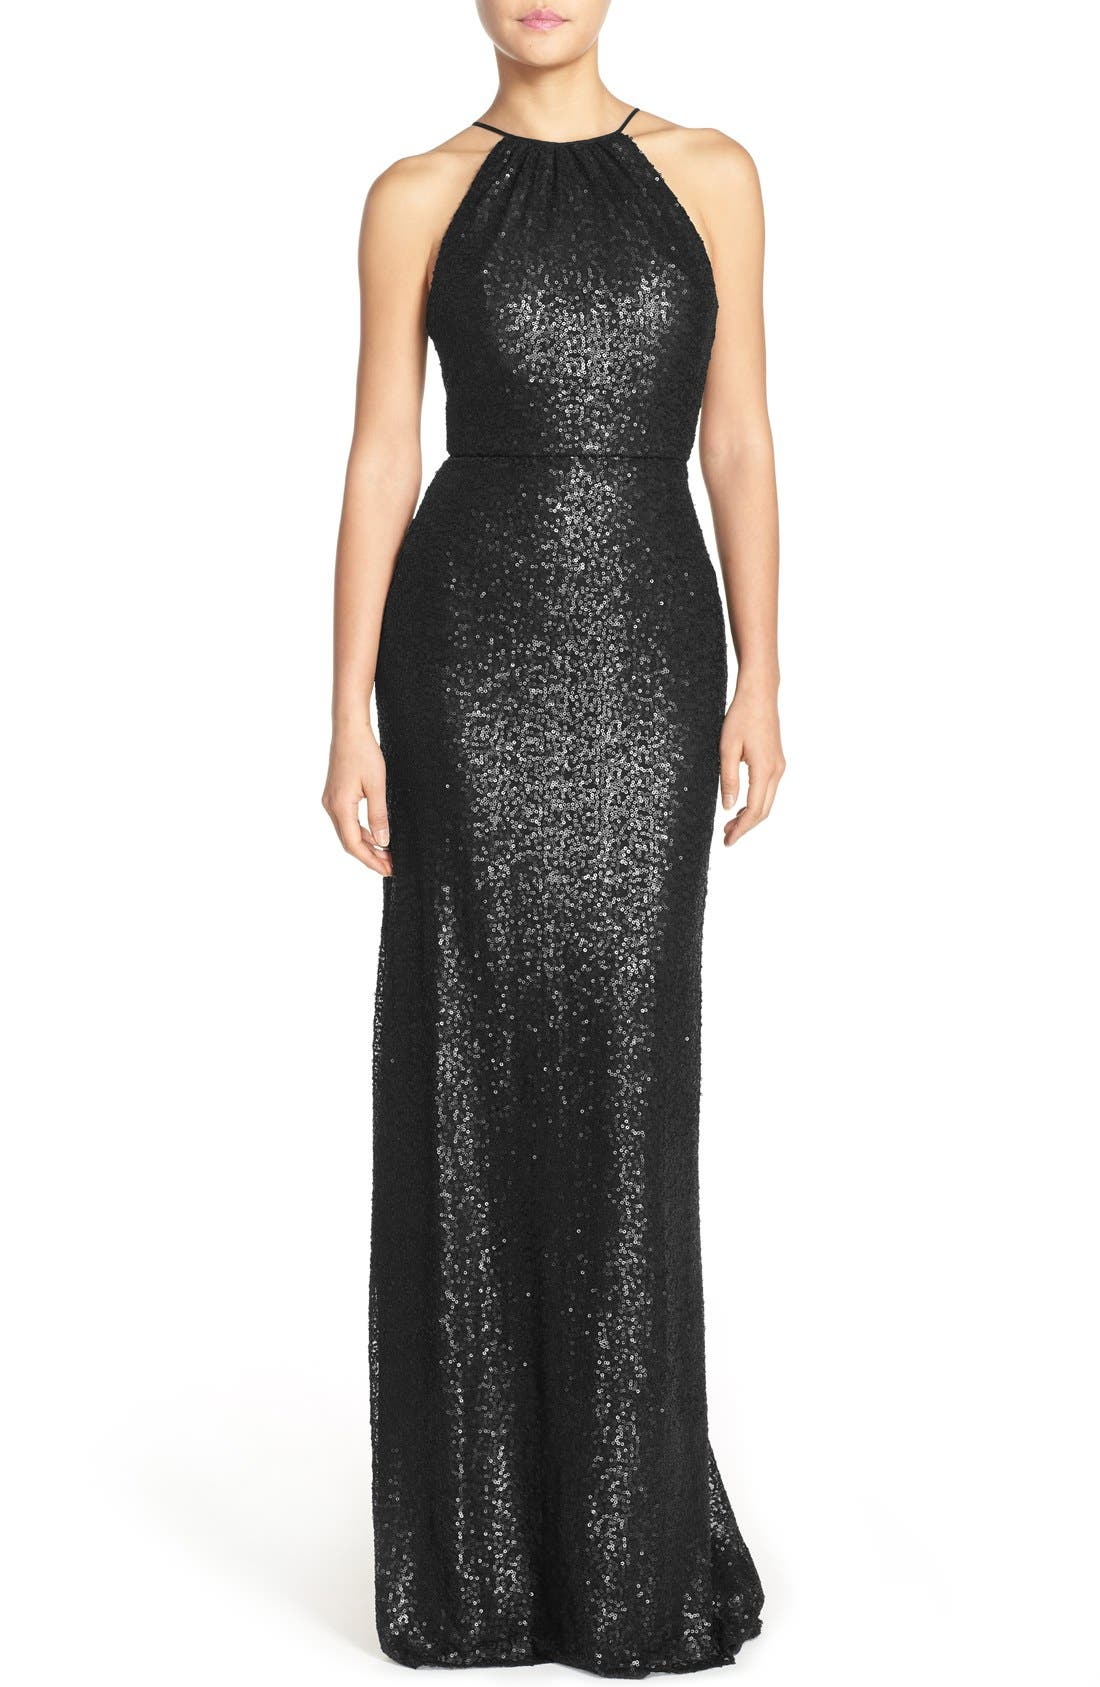 AMSALE 'Chandler' Sequin Tulle Halter Style Gown, Main, color, 001